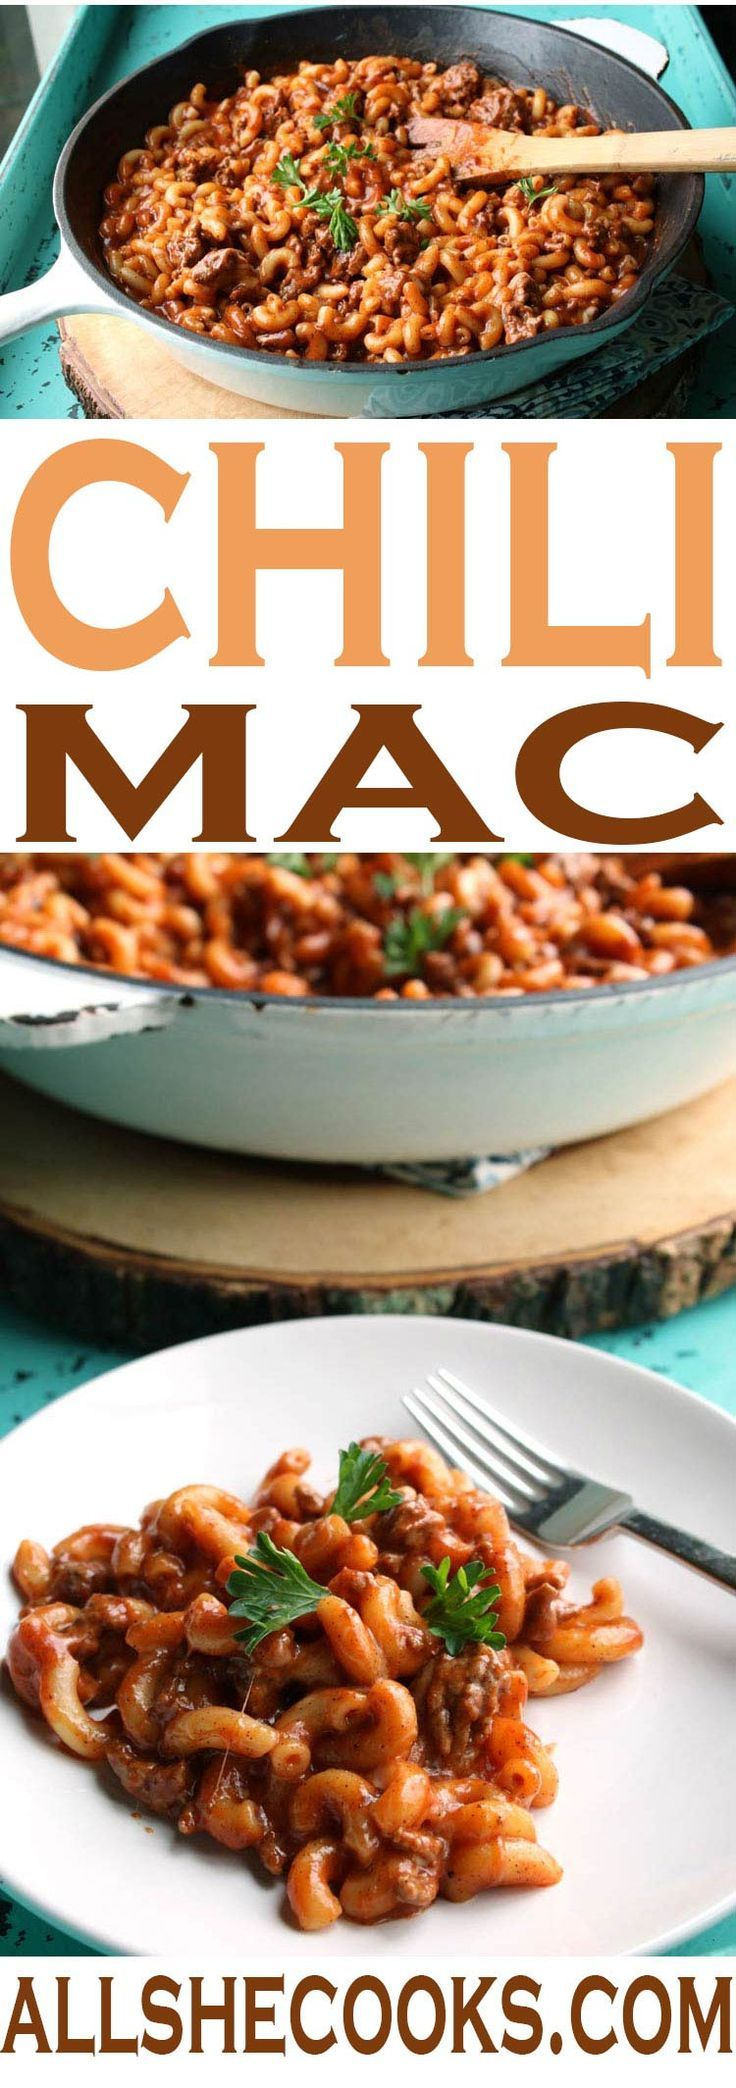 Easy home cooked meals like our Chili Mac recipe are always a winner. This recipe for Chili Mac is the best chili mac recipe worldwide in our opinion... it's that good. Easy to whip up and have supper on the table in minutes.